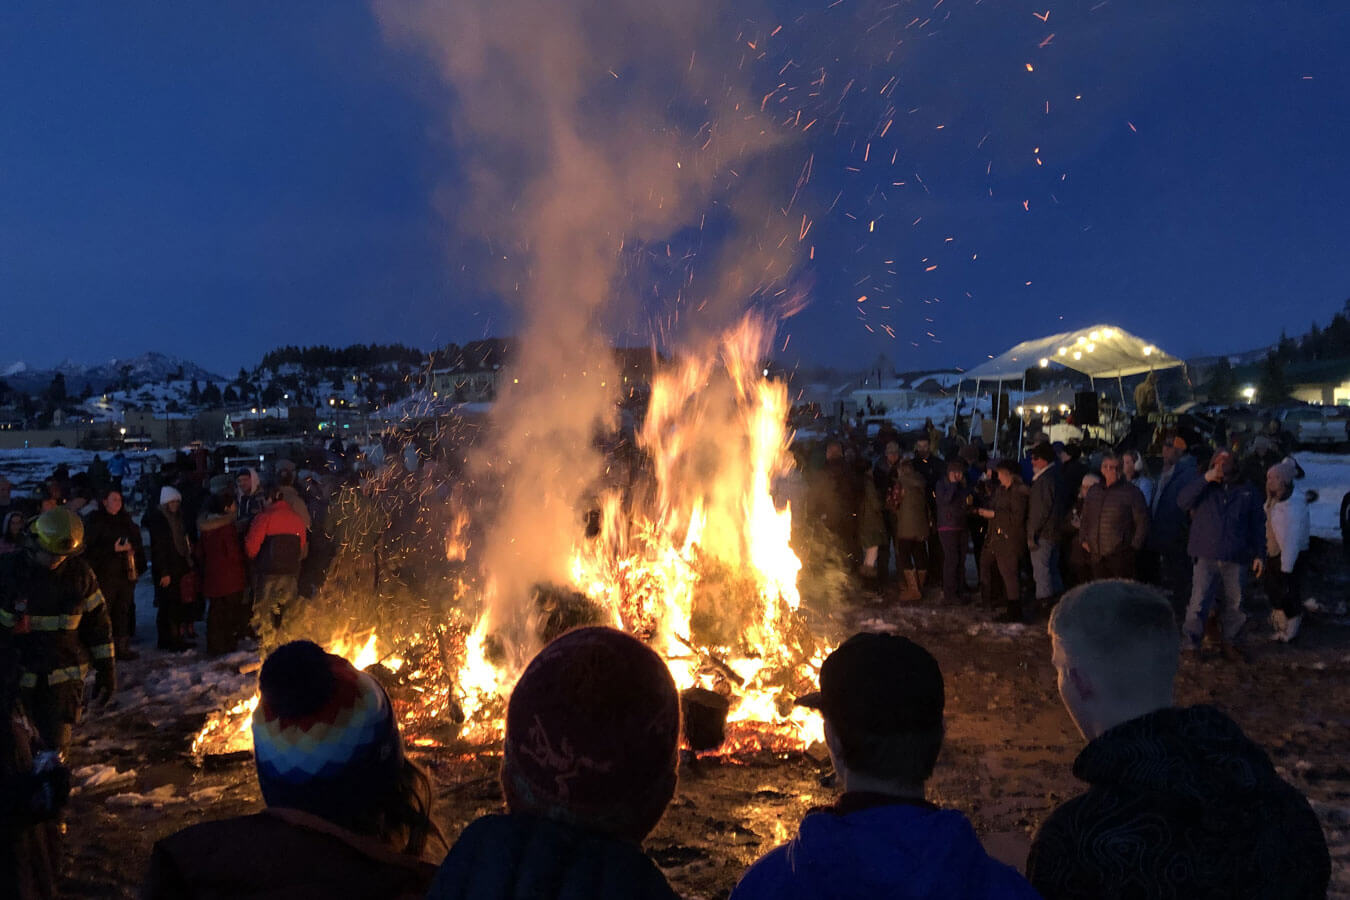 Join us for an epic bonfire in downtown Pagosa Springs